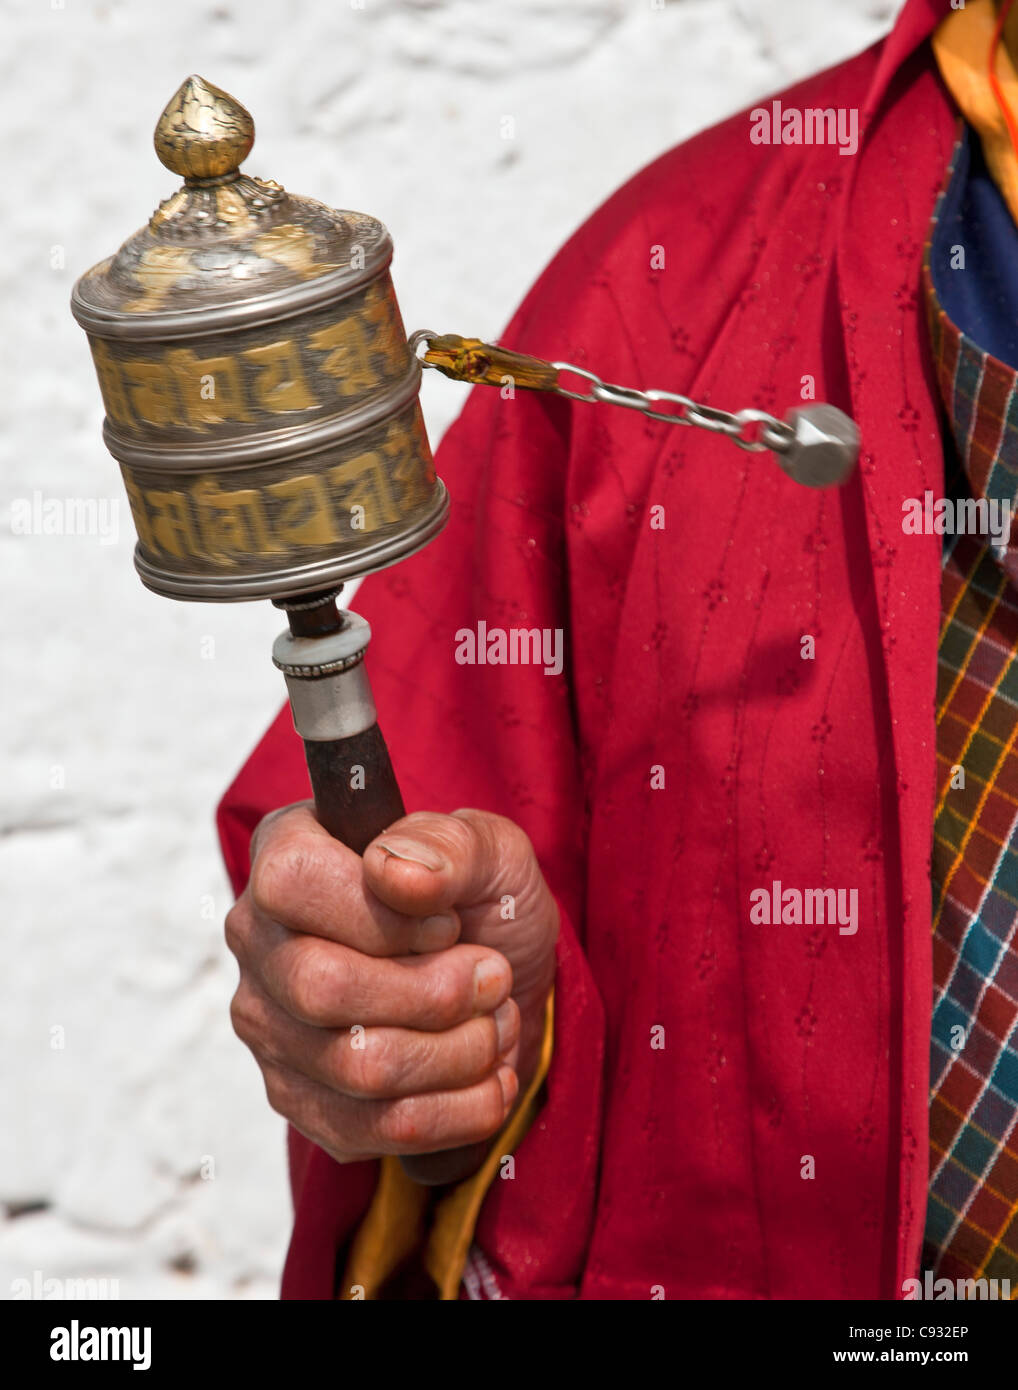 A Buddhist woman spins her hand-held prayer wheel in a clockwise direction. - Stock Image